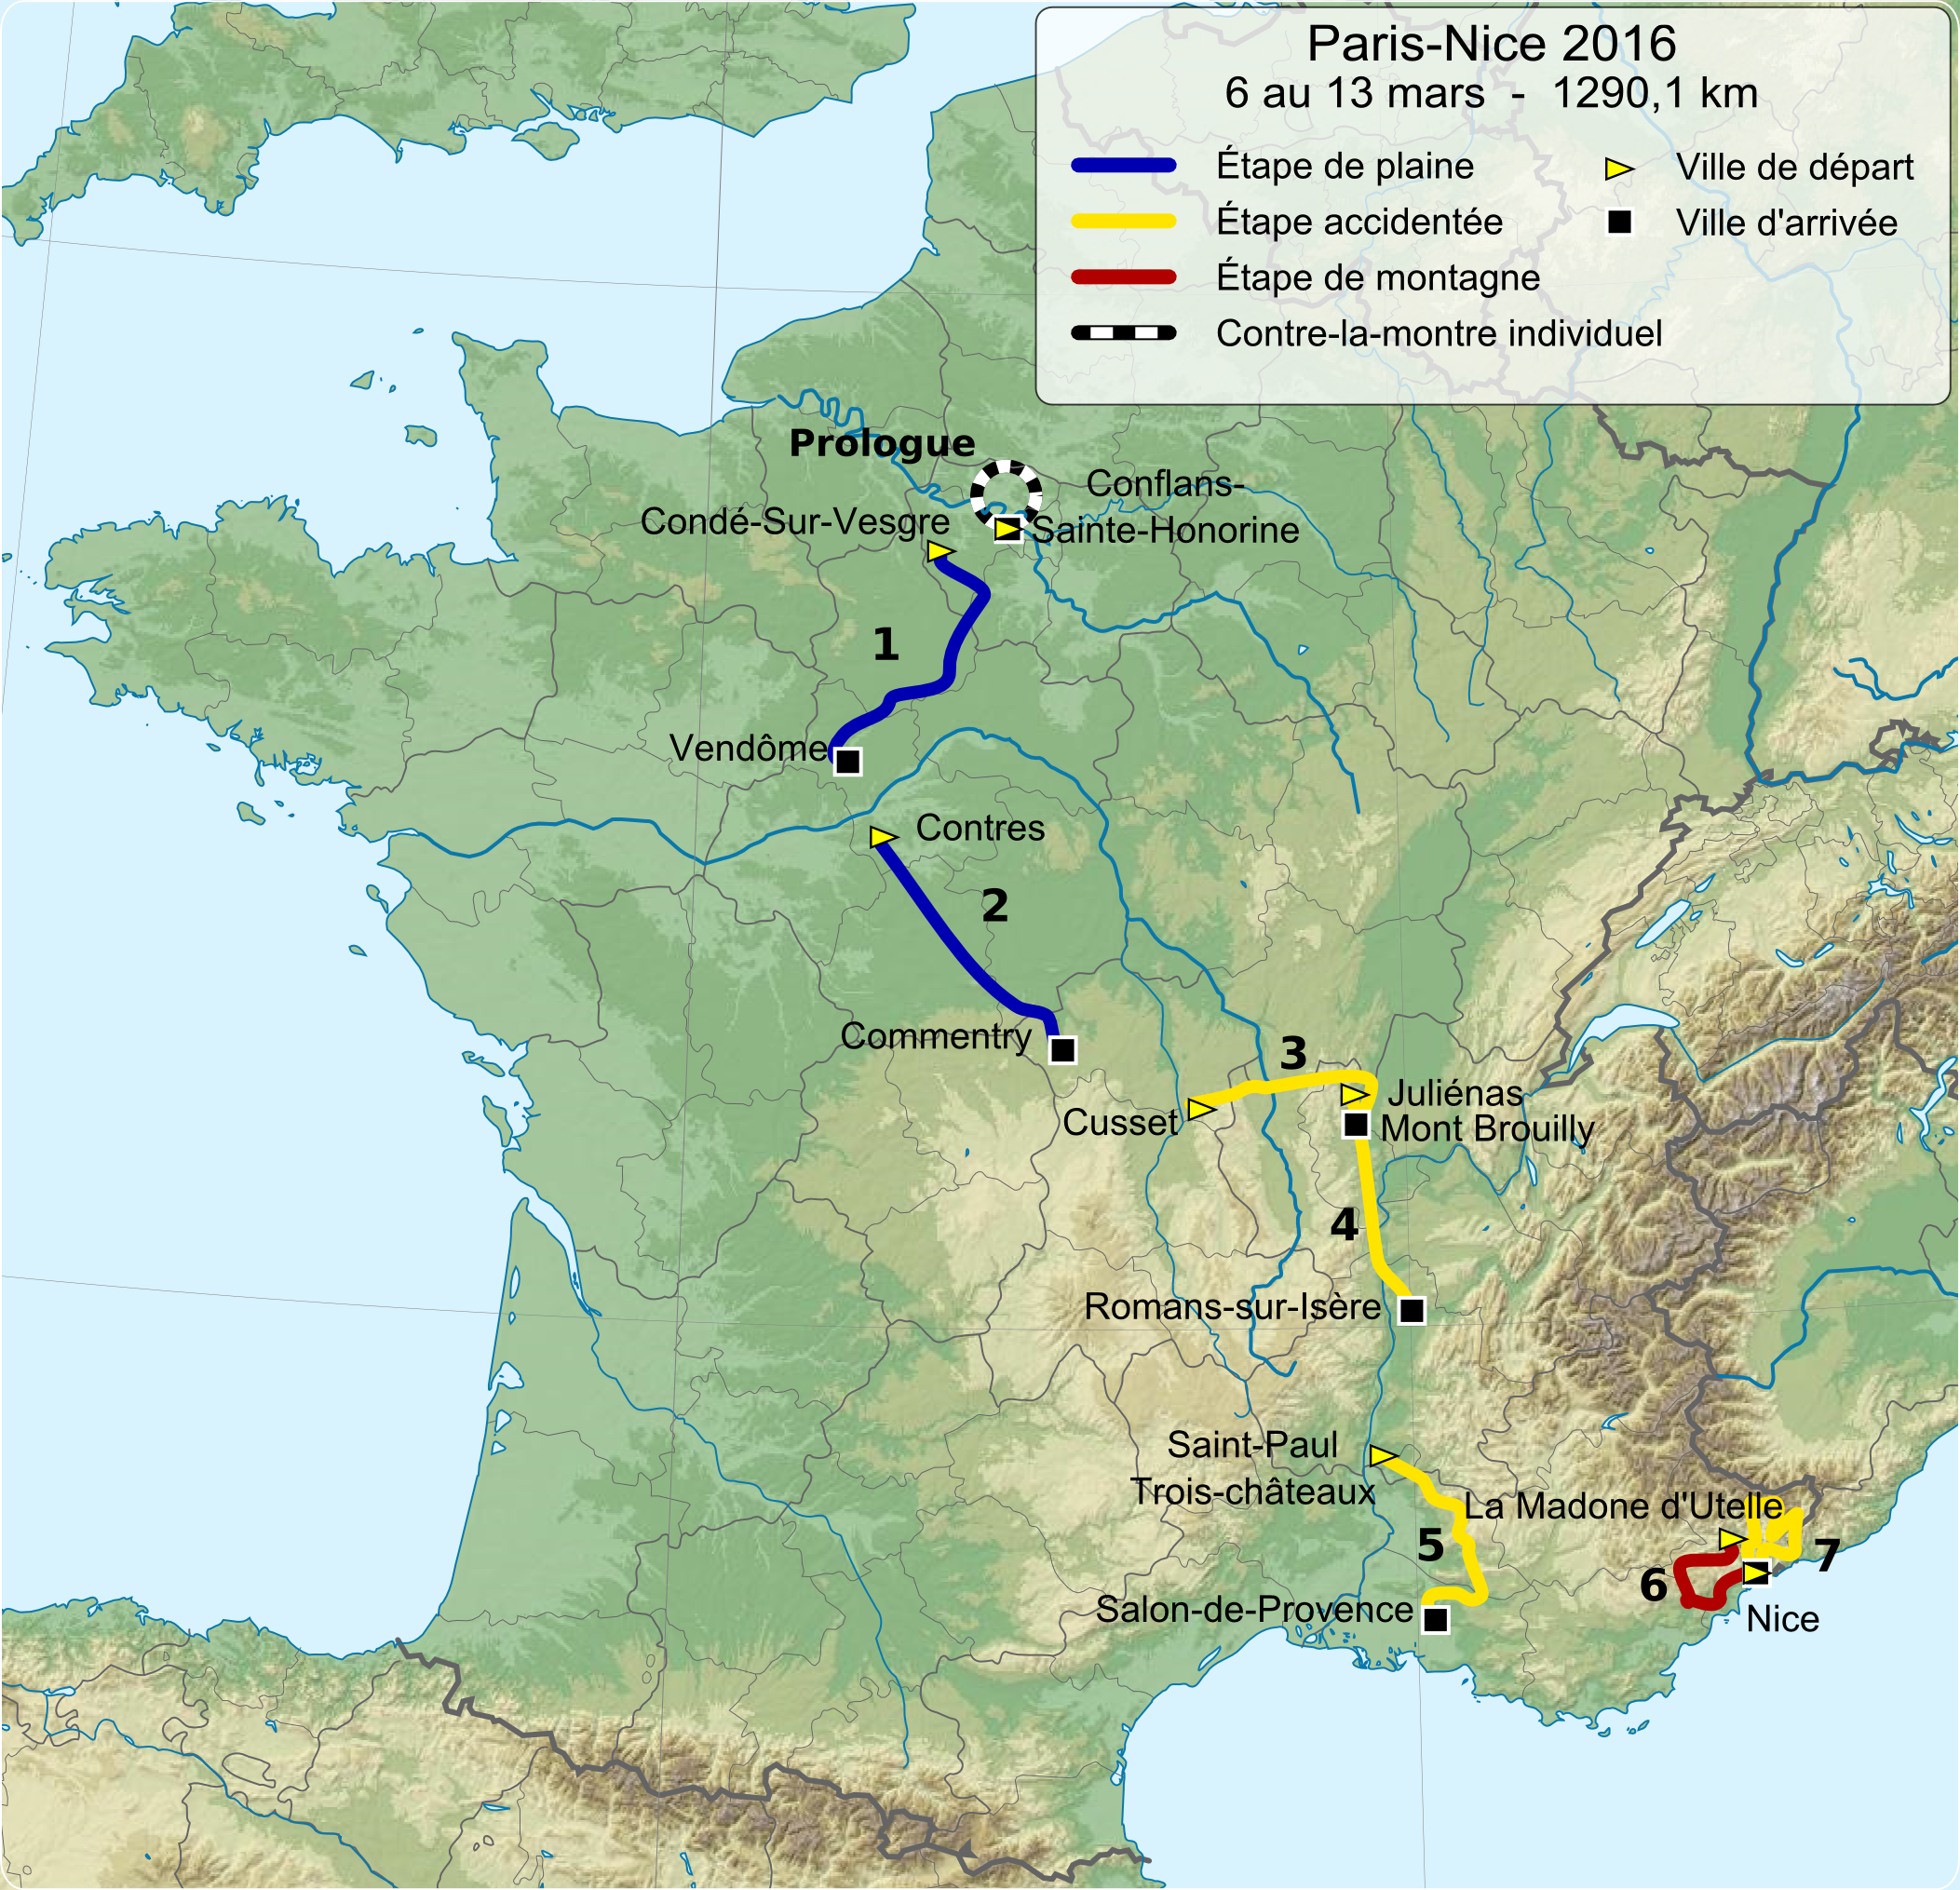 FileParisNice Overviewpng Wikimedia Commons - Paris map 2016